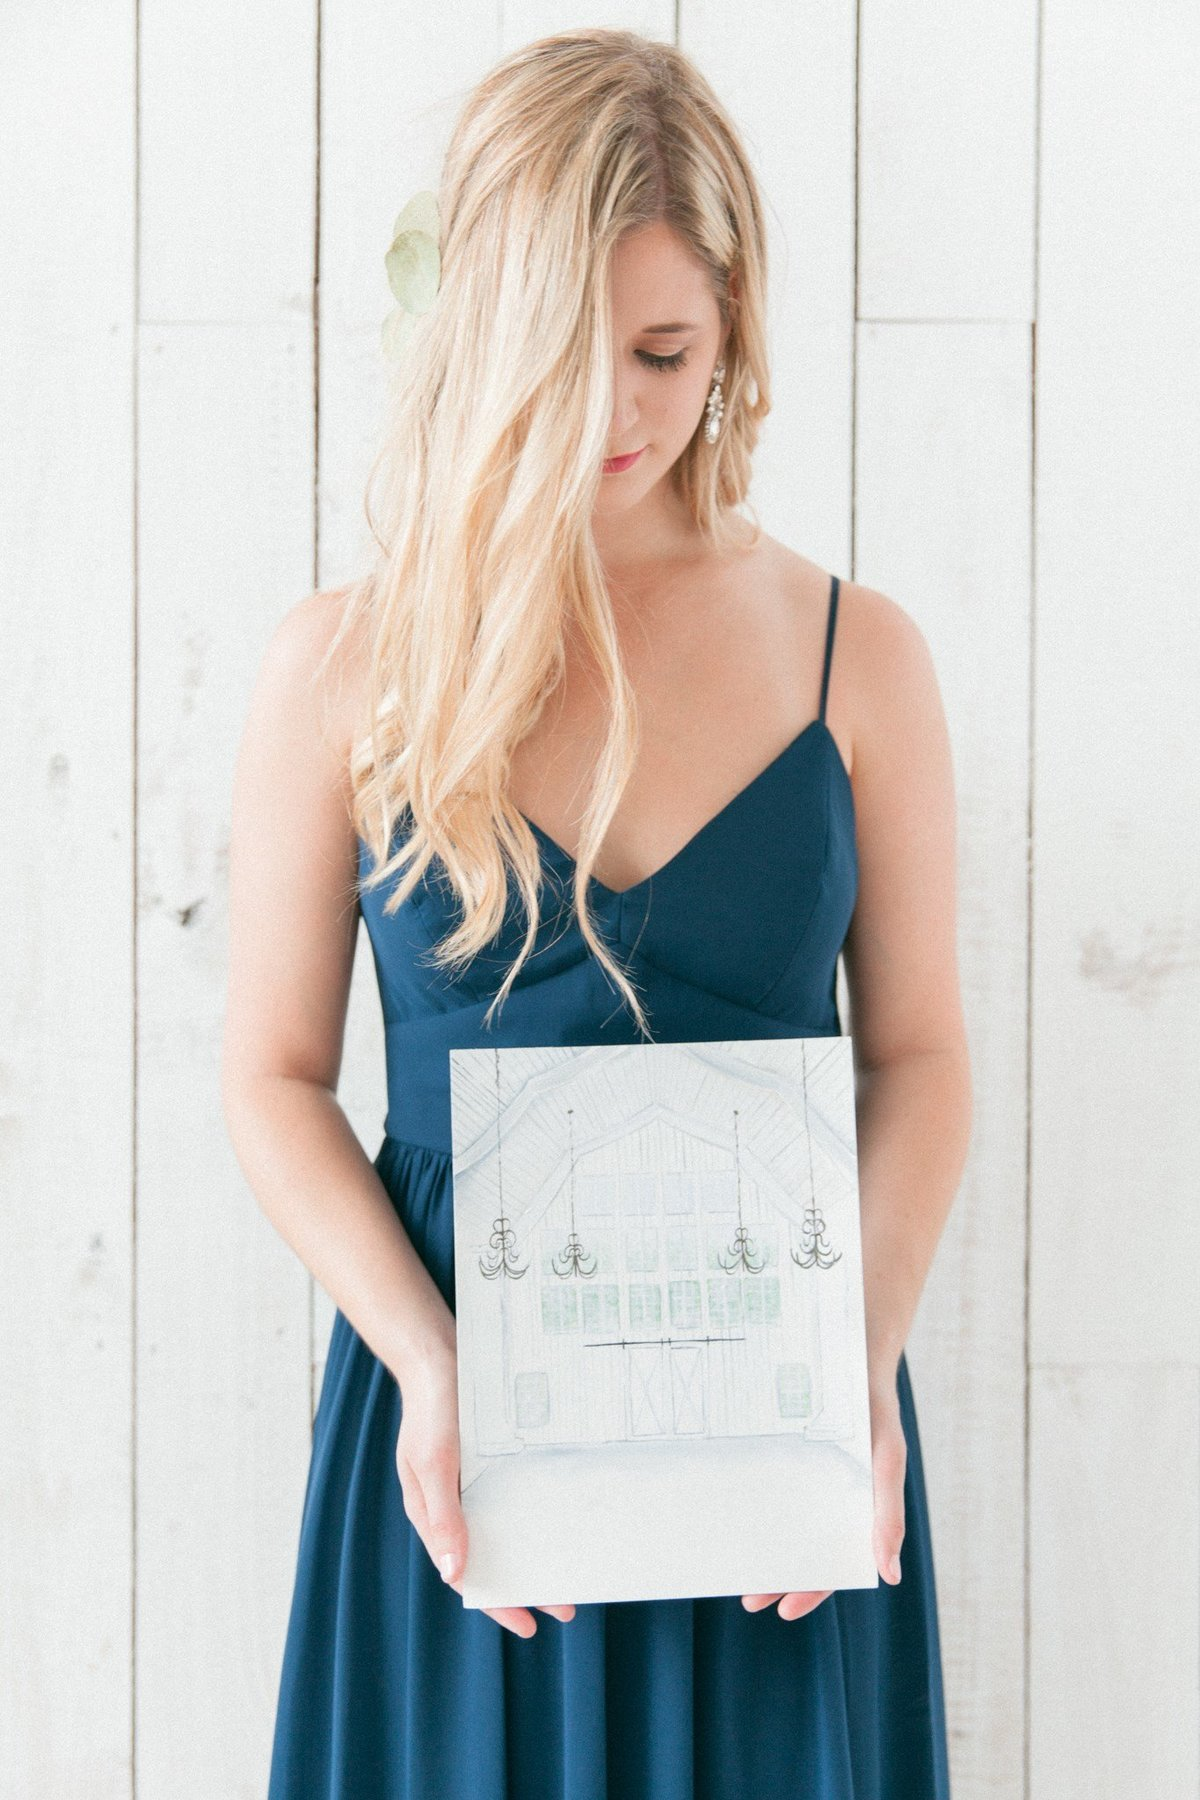 Blonde model holding White Sparrow Quinlan Texas DFW Watercolor Wedding Invitation Suite